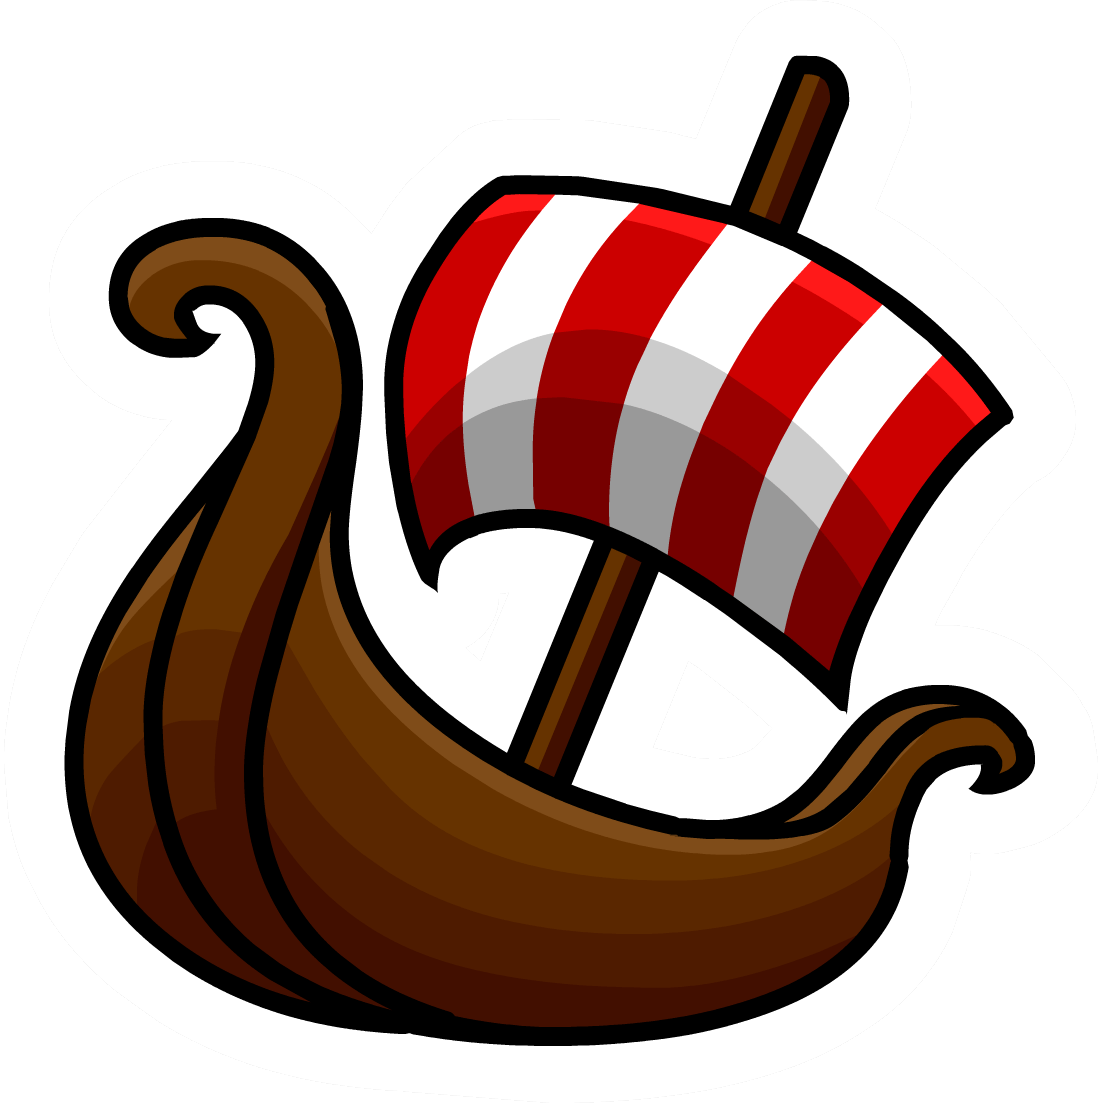 png royalty free stock Boat sticker transparent png. Viking clipart